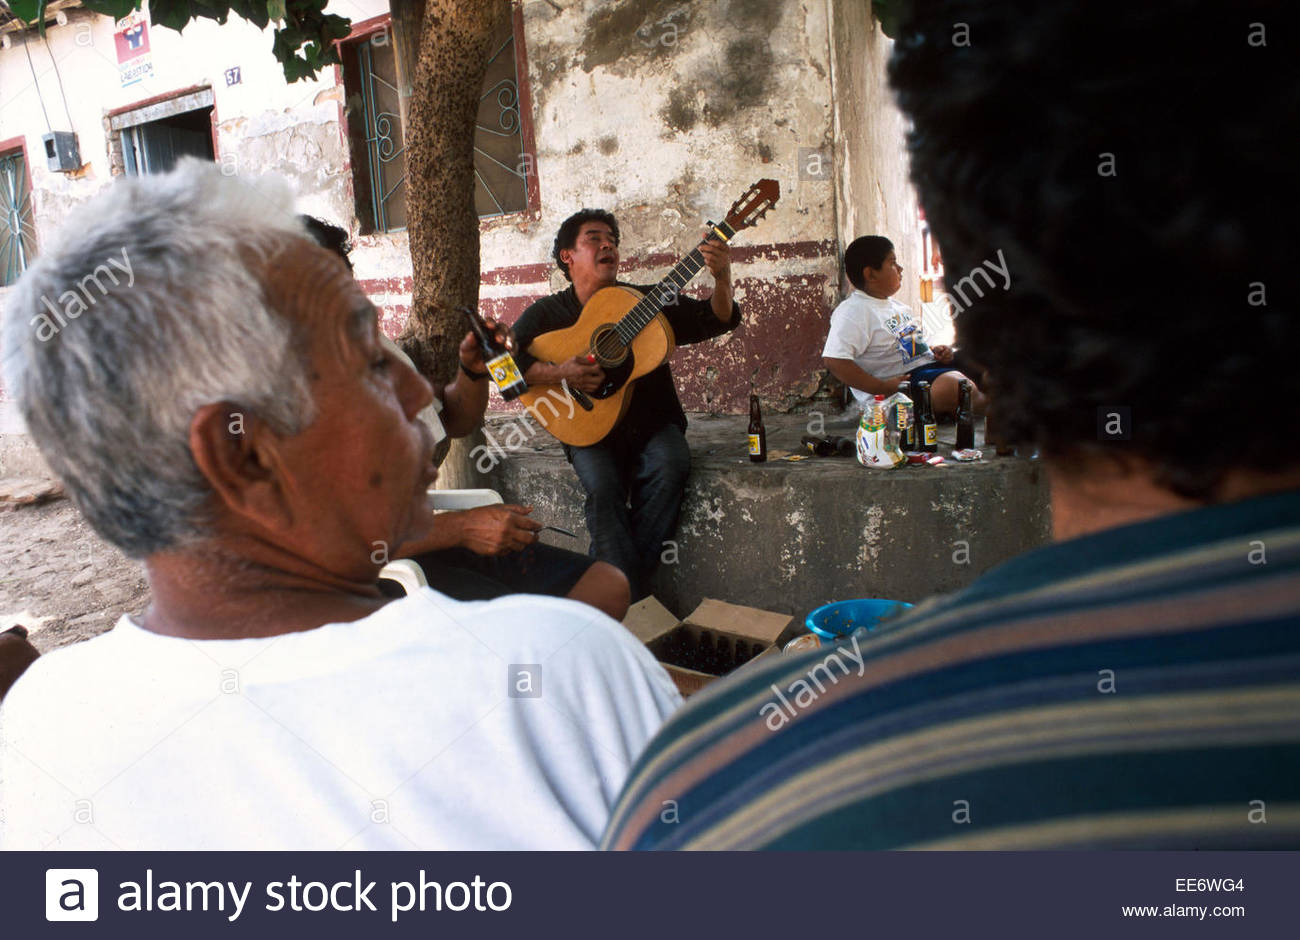 Mexcaltitan, A street musician performing - Stock Image